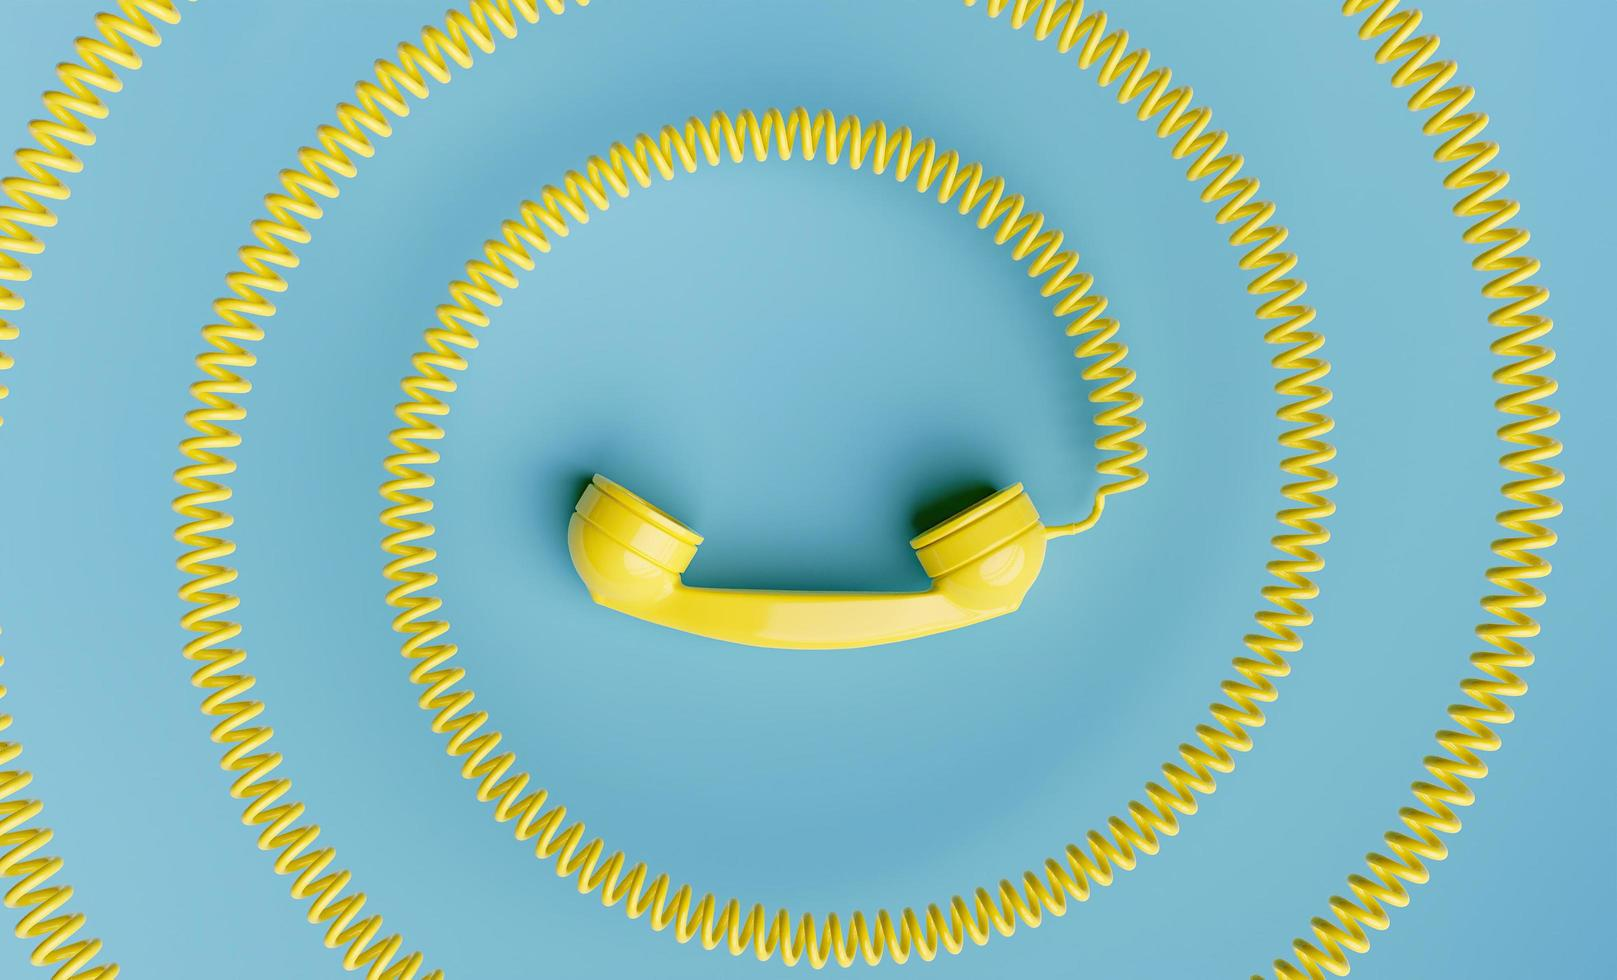 Telephone handset with coiled cord towards the center of the image photo